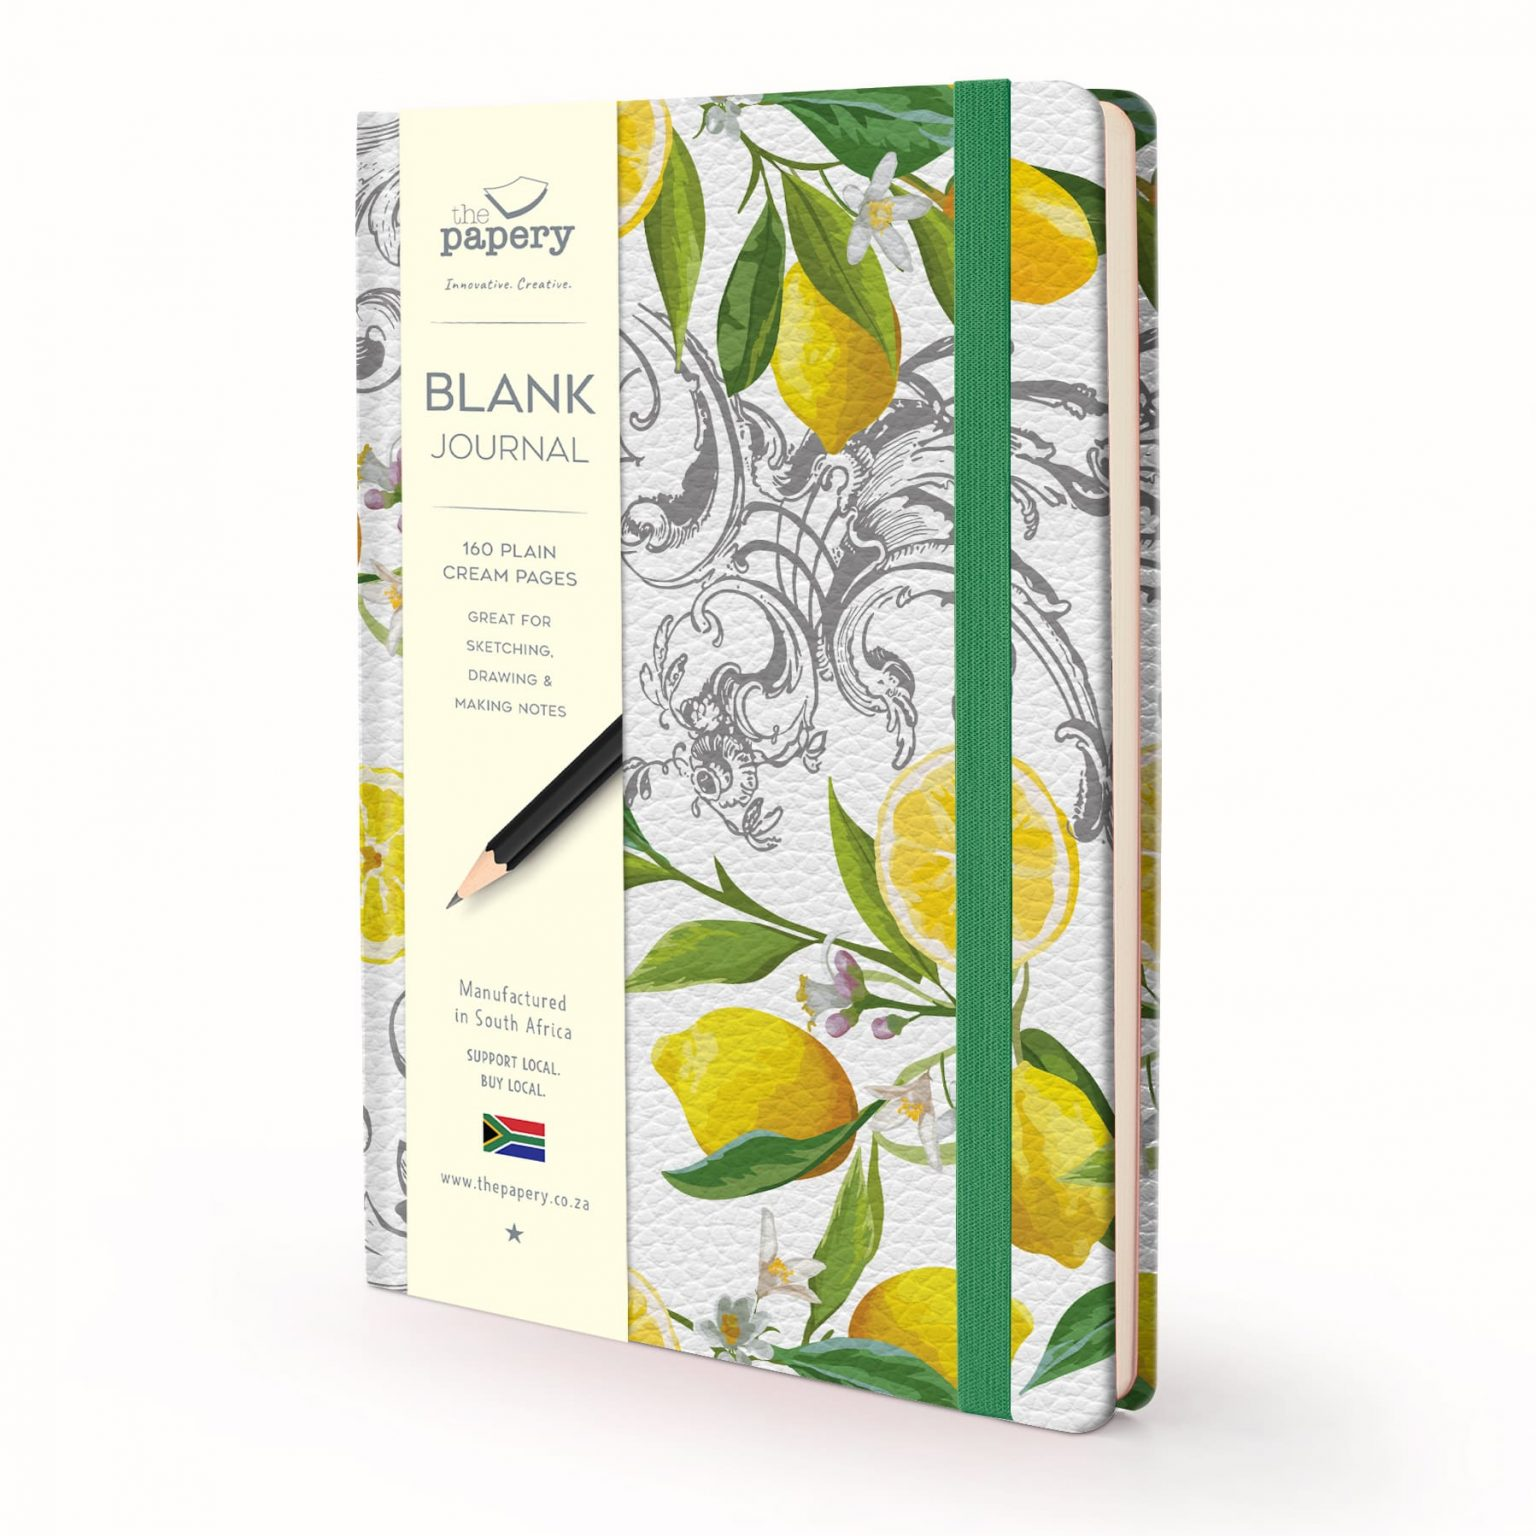 Image shows a Designer Floral - Lemon Blank Journal